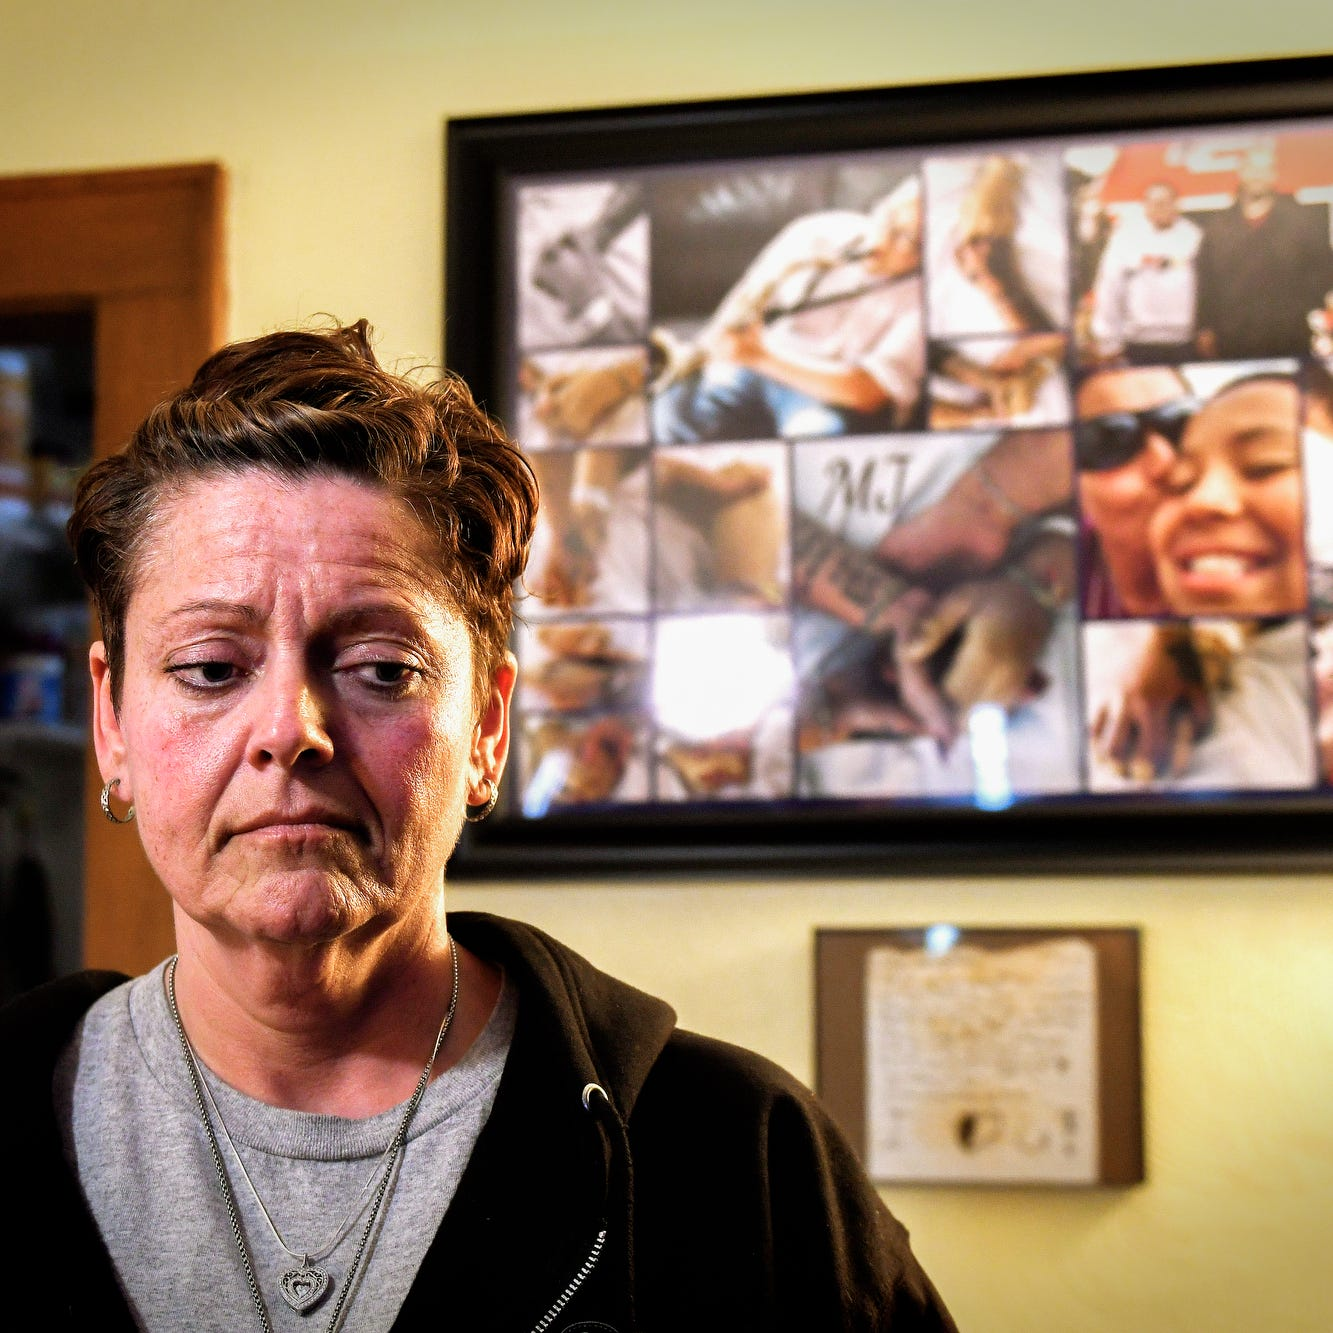 Joanna Wohlfert photographed at her home near a photo collage of her son Michael Martin and family members on Monday, April 29, 2019, in Lansing. Michael, 13, died on Jan. 25, 2019, at Sparrow Hospital, two days after attempting suicide in his home. Wohlfert says her son was bullied in the months leading up to his death.